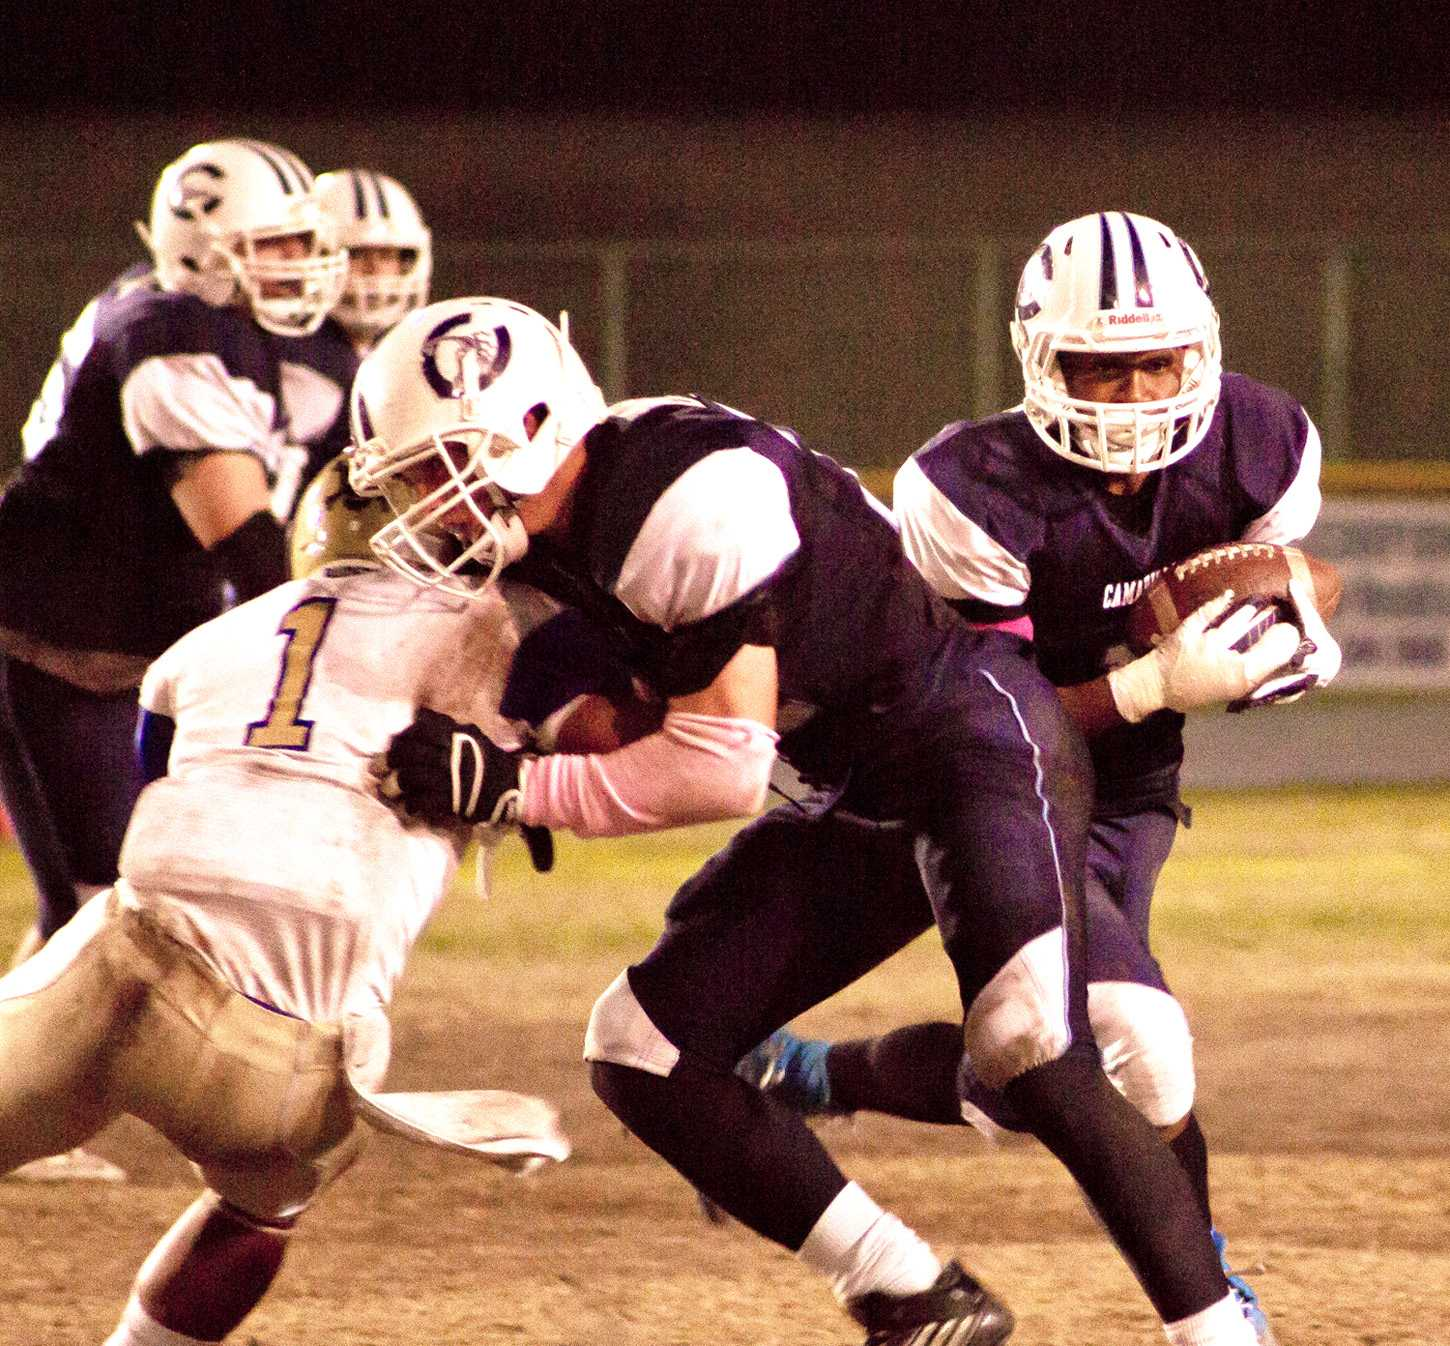 Cam High takes a hand off to score a touchdown against Channel Islands.